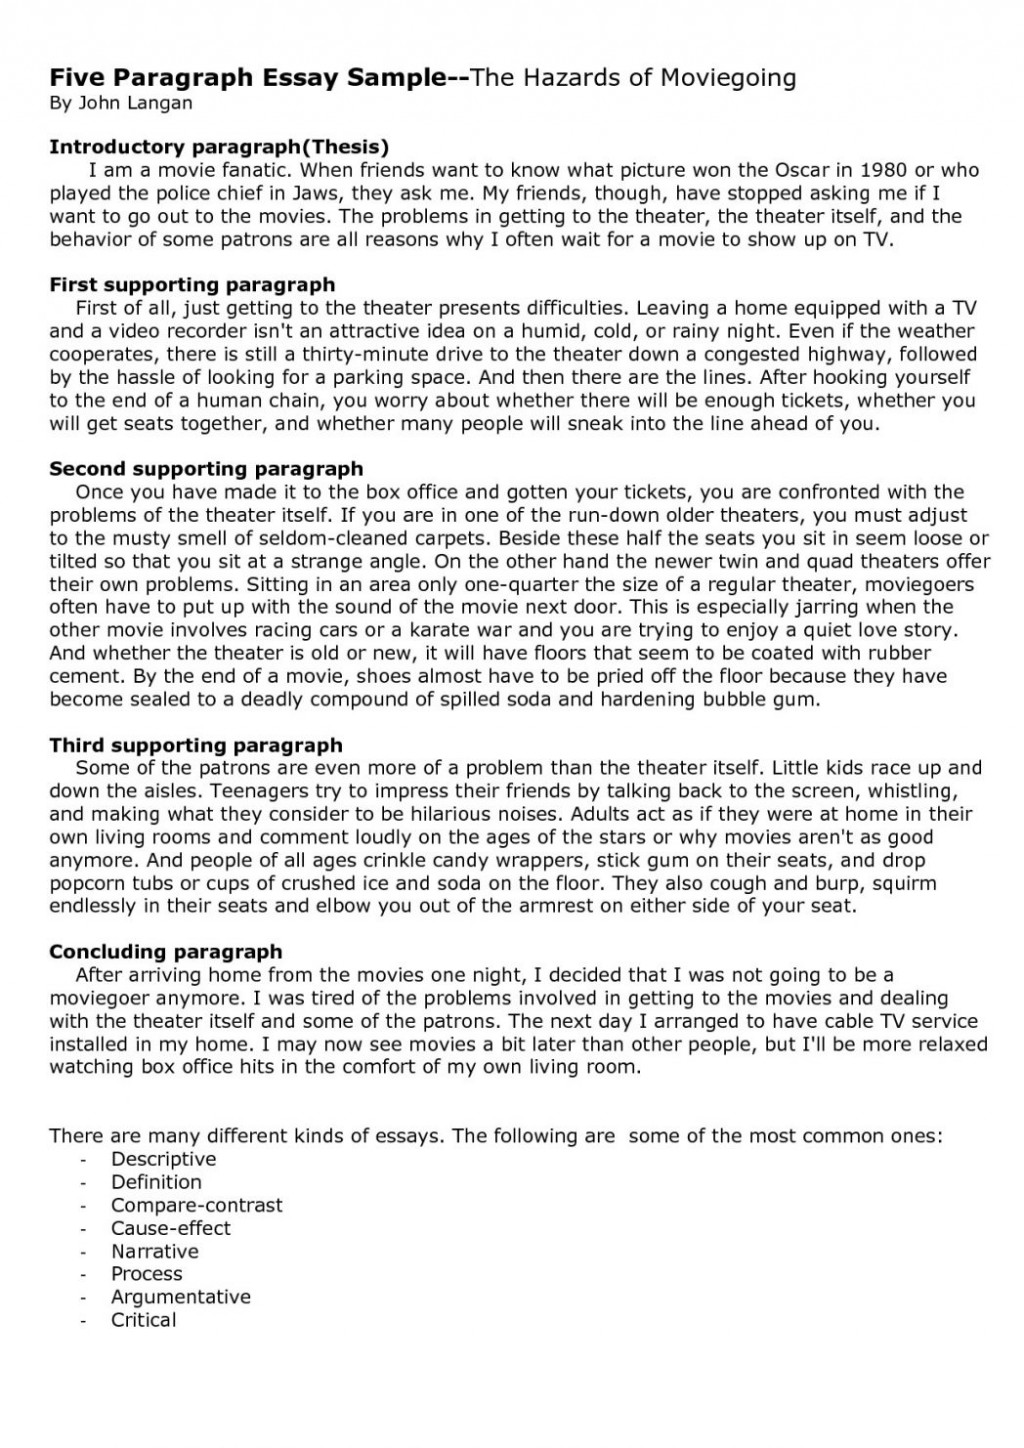 016 How To Essays Essay Example Examples Of Introductions New Intro Paragraph Write An Introduction For Opi Informative Start Analytical Opinion About Book Pdf Yourself Excellent 4th Grade Scholarships Large